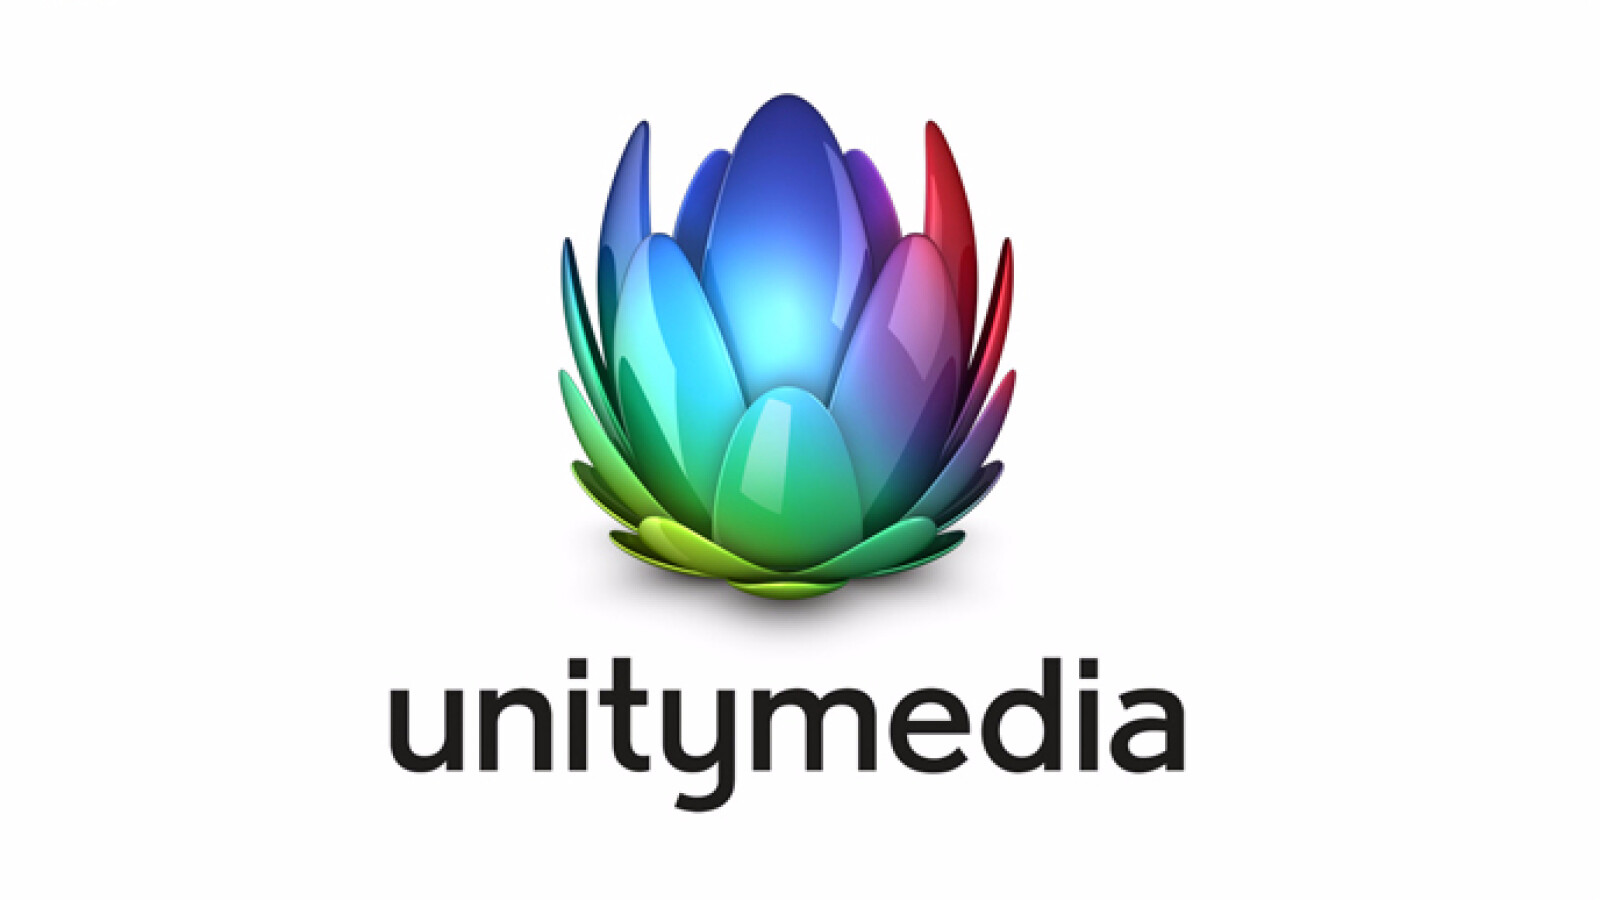 Untiymedia